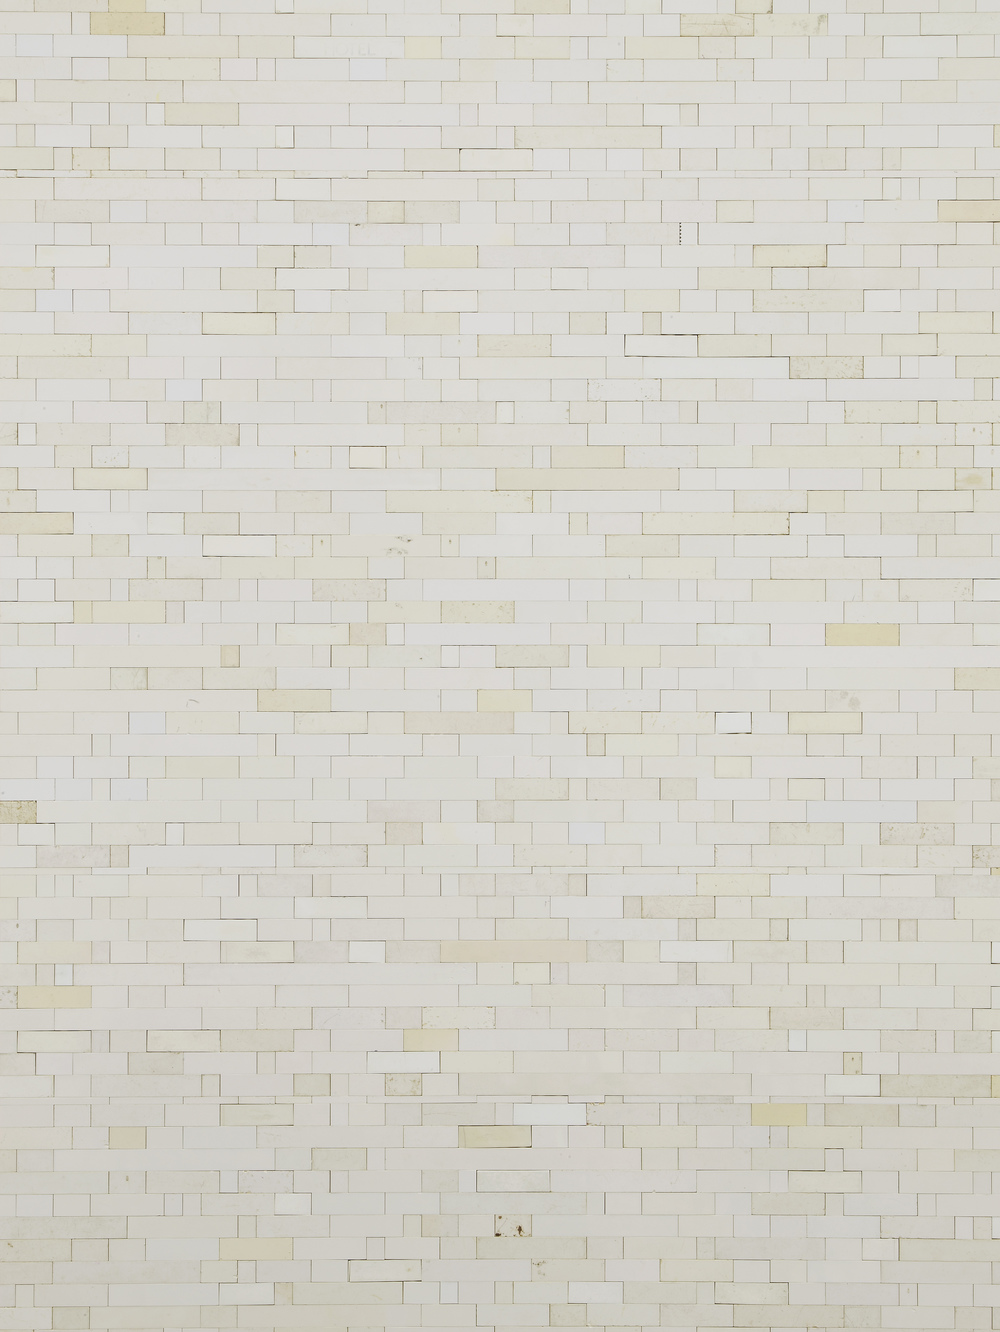 Michael Wilkinson White Wall 5 (Detail) 2013 White Lego column 185 x 33 x 50 cm / 72.8 x 11.8 x 19.6 in